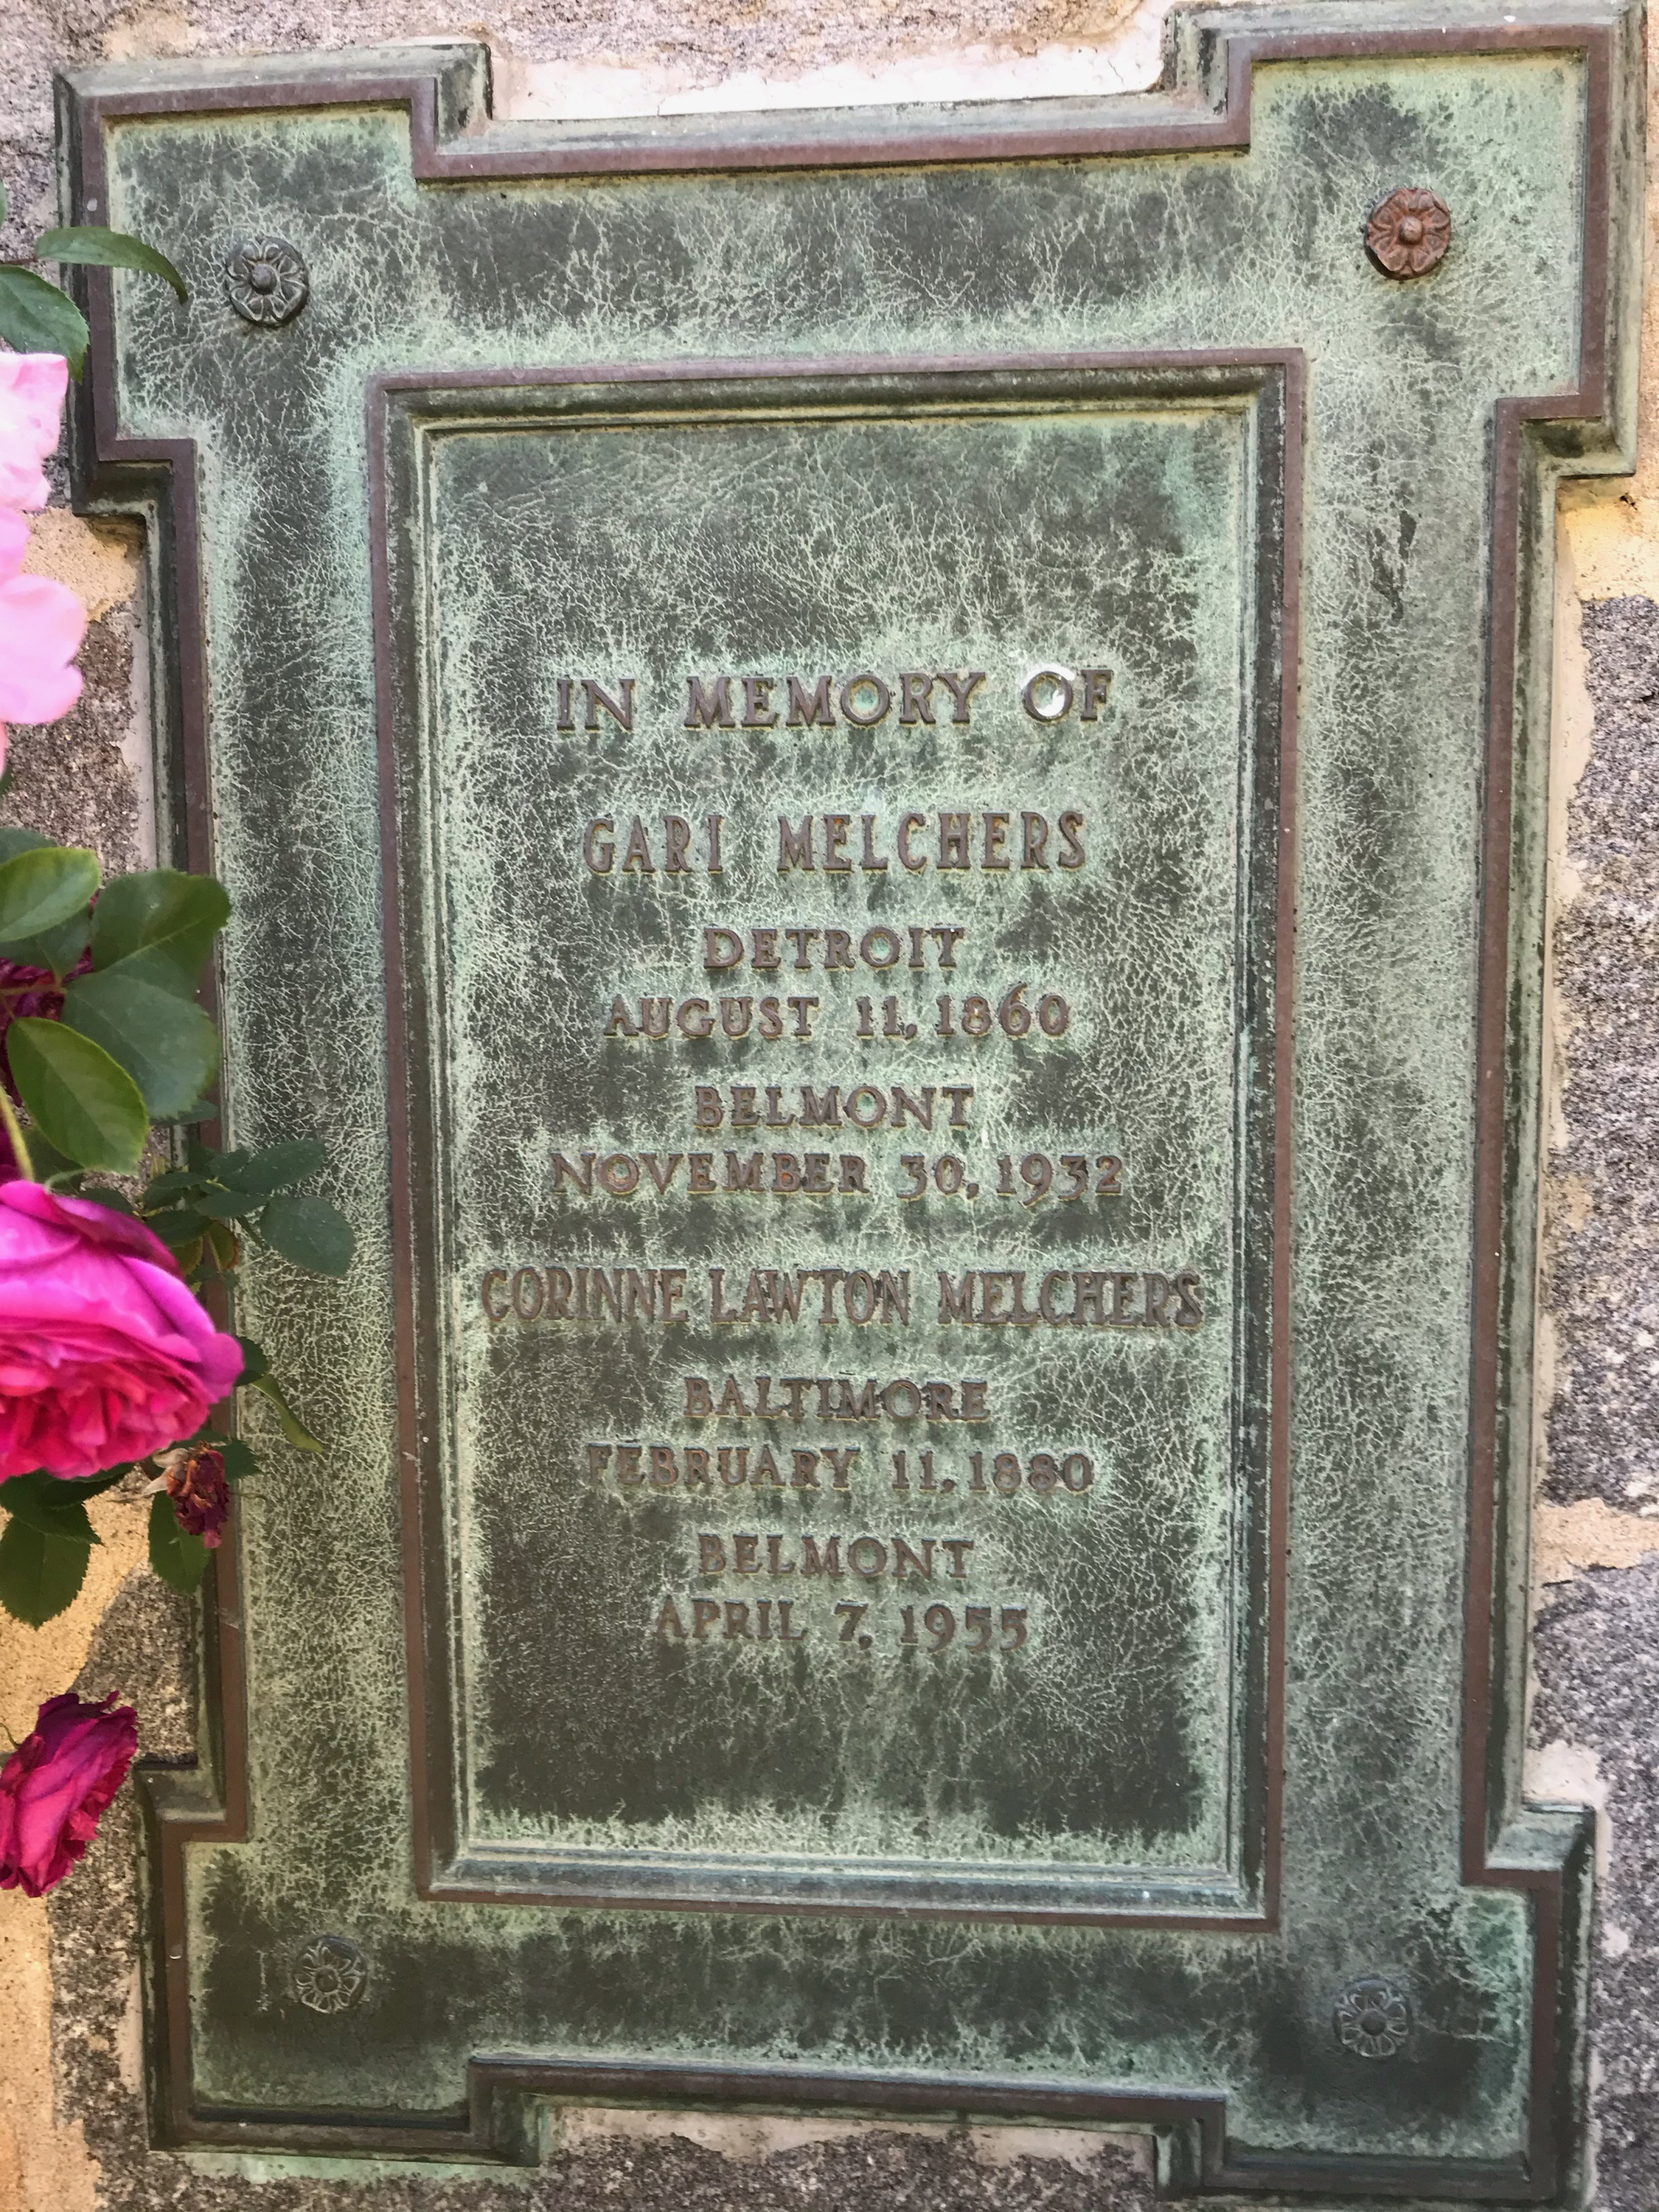 Interment Plaque, please note that Corinne Melchers' birthday is actually February 27, 1880.